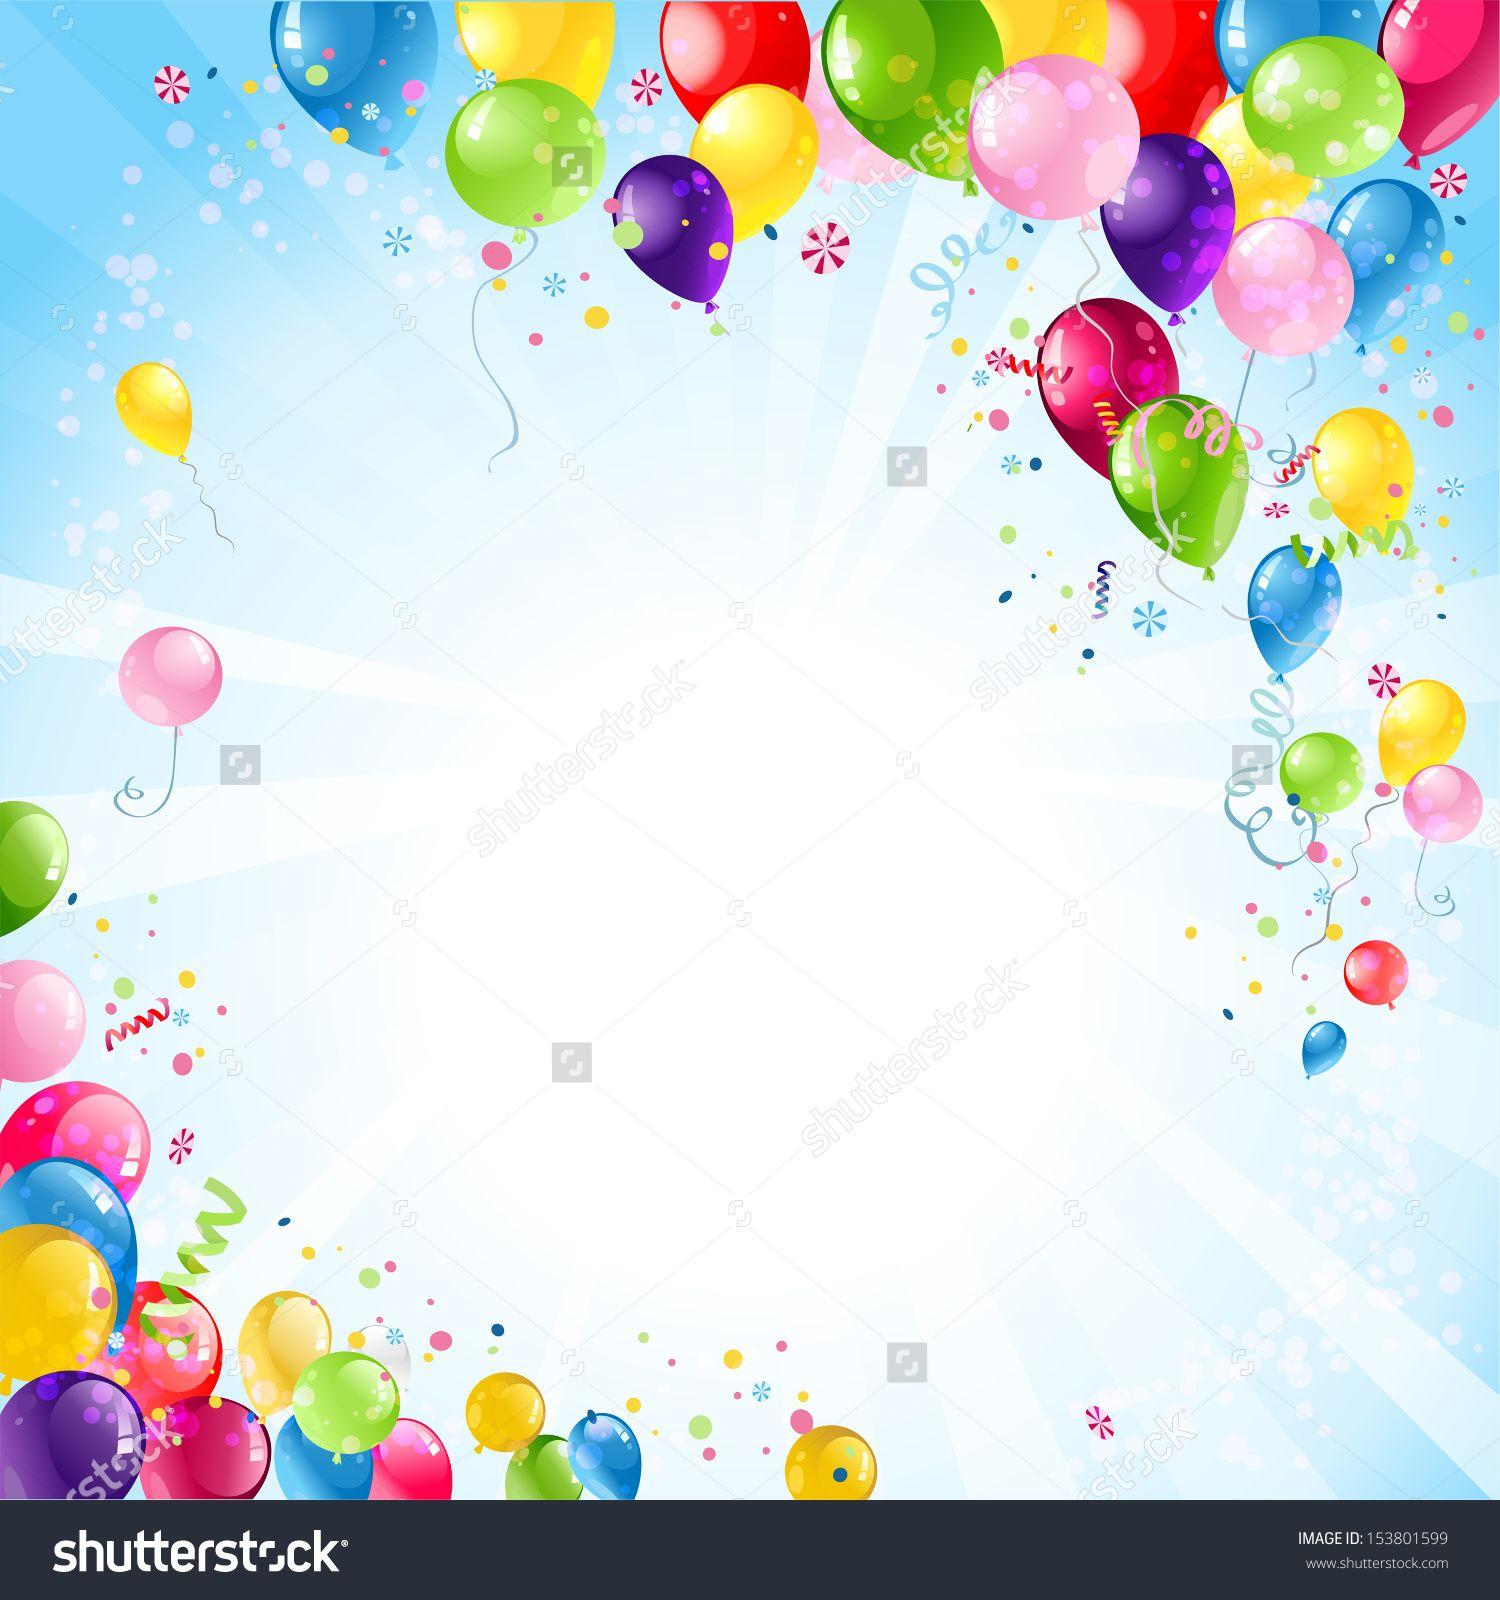 Free Birthday Backgrounds Vector